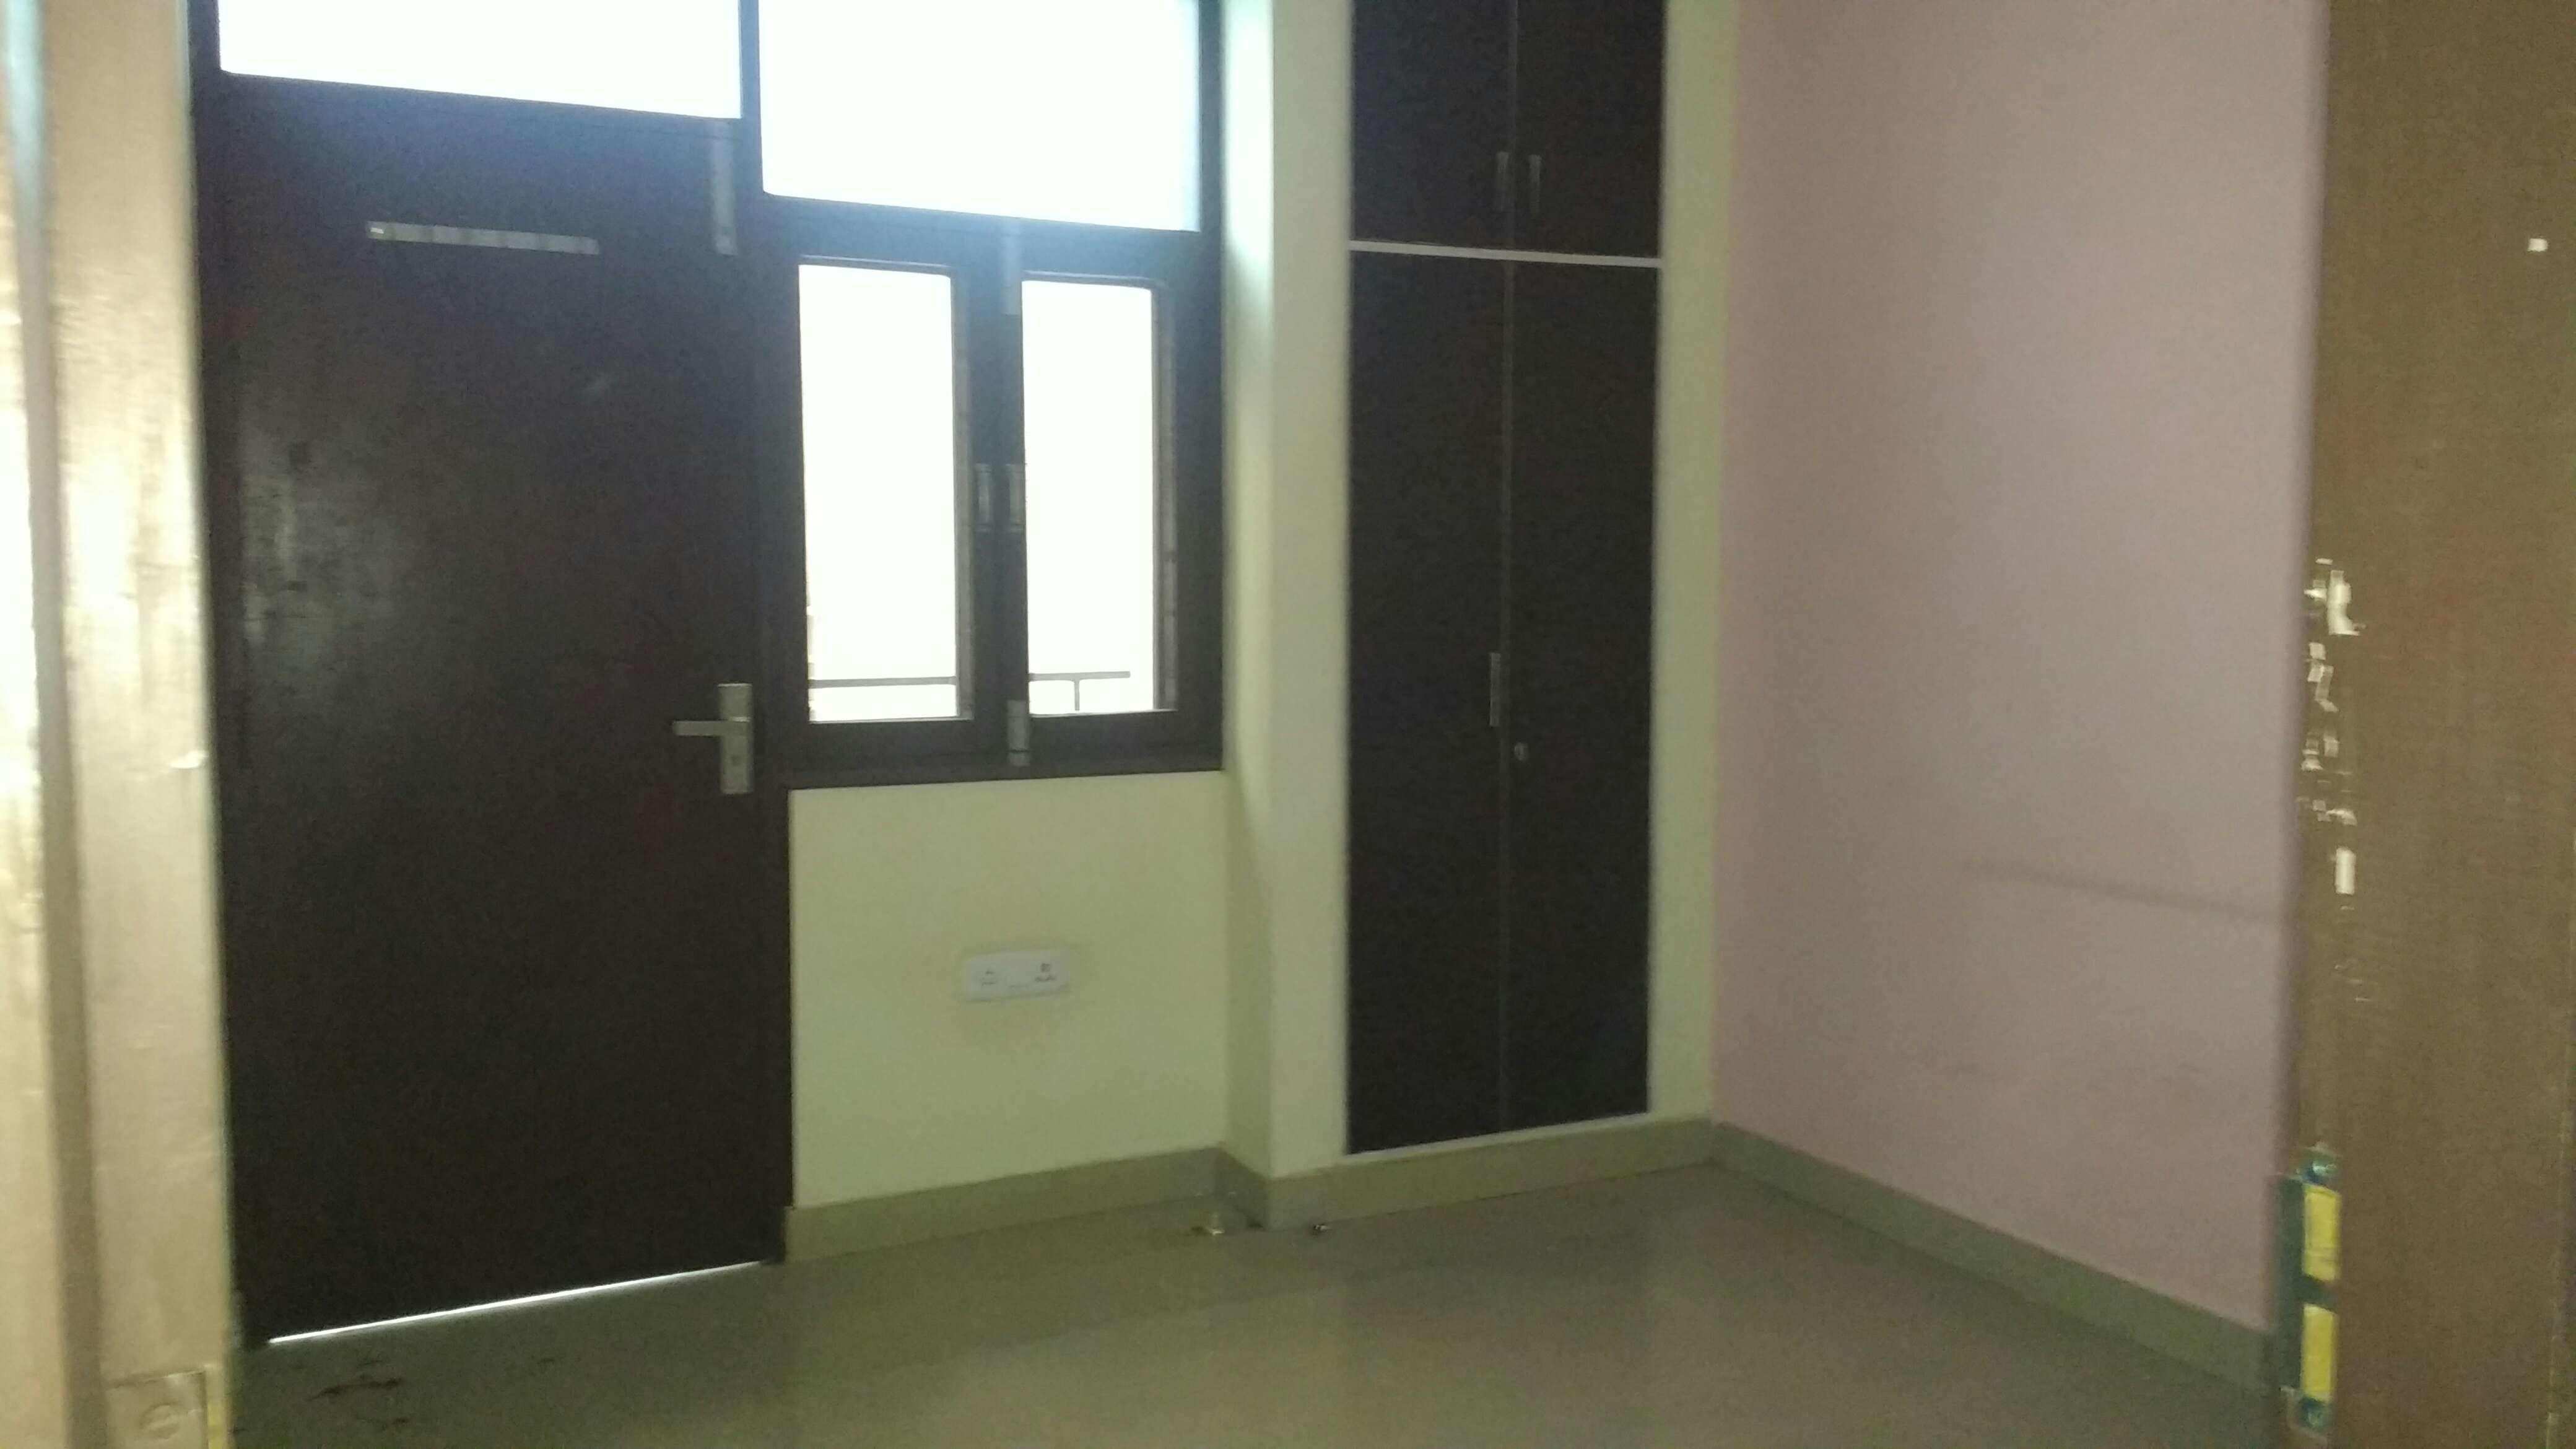 800 sq ft 2BHK 2BHK+2T (800 sq ft) Property By Daksh Property In Project, Chattarpur